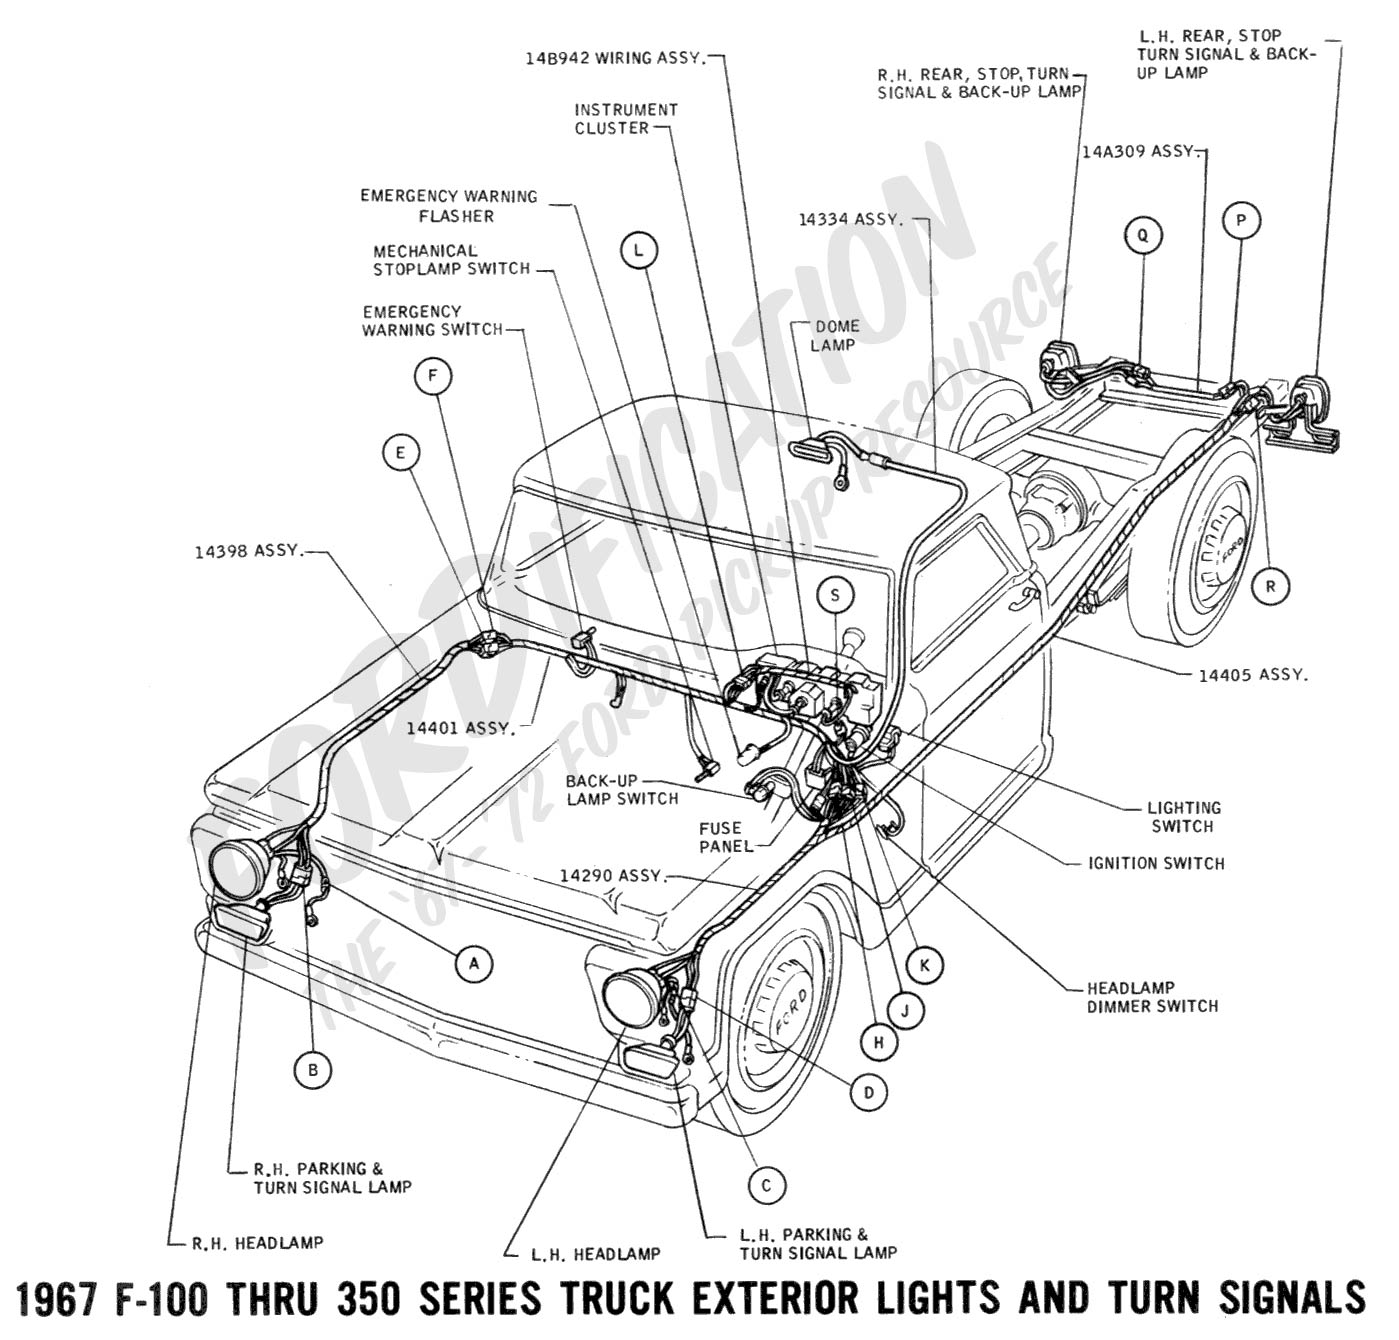 hight resolution of 1994 ford f150 fuel system diagram wiring diagram new 1990 f150 fuel system diagram